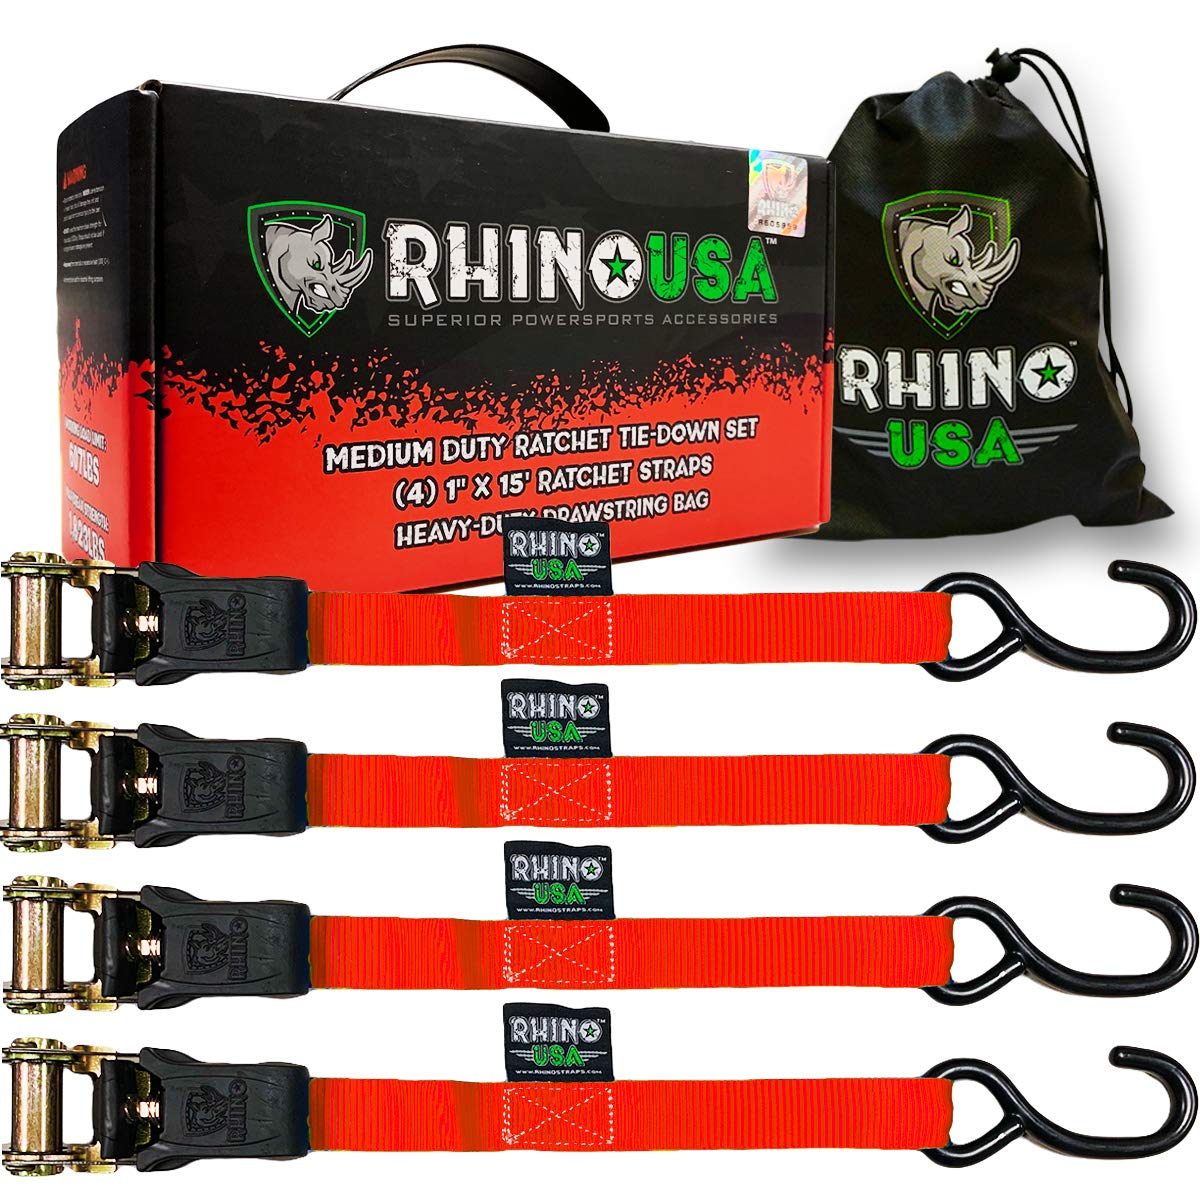 RHINO USA Ratchet Tie Down Straps (4PK) - 1,823lb Guaranteed Max Break Strength, Includes (4) Premium 1'' x 15' Rachet Tie Downs with Padded Handles. Best for Moving, Securing Cargo (RED)